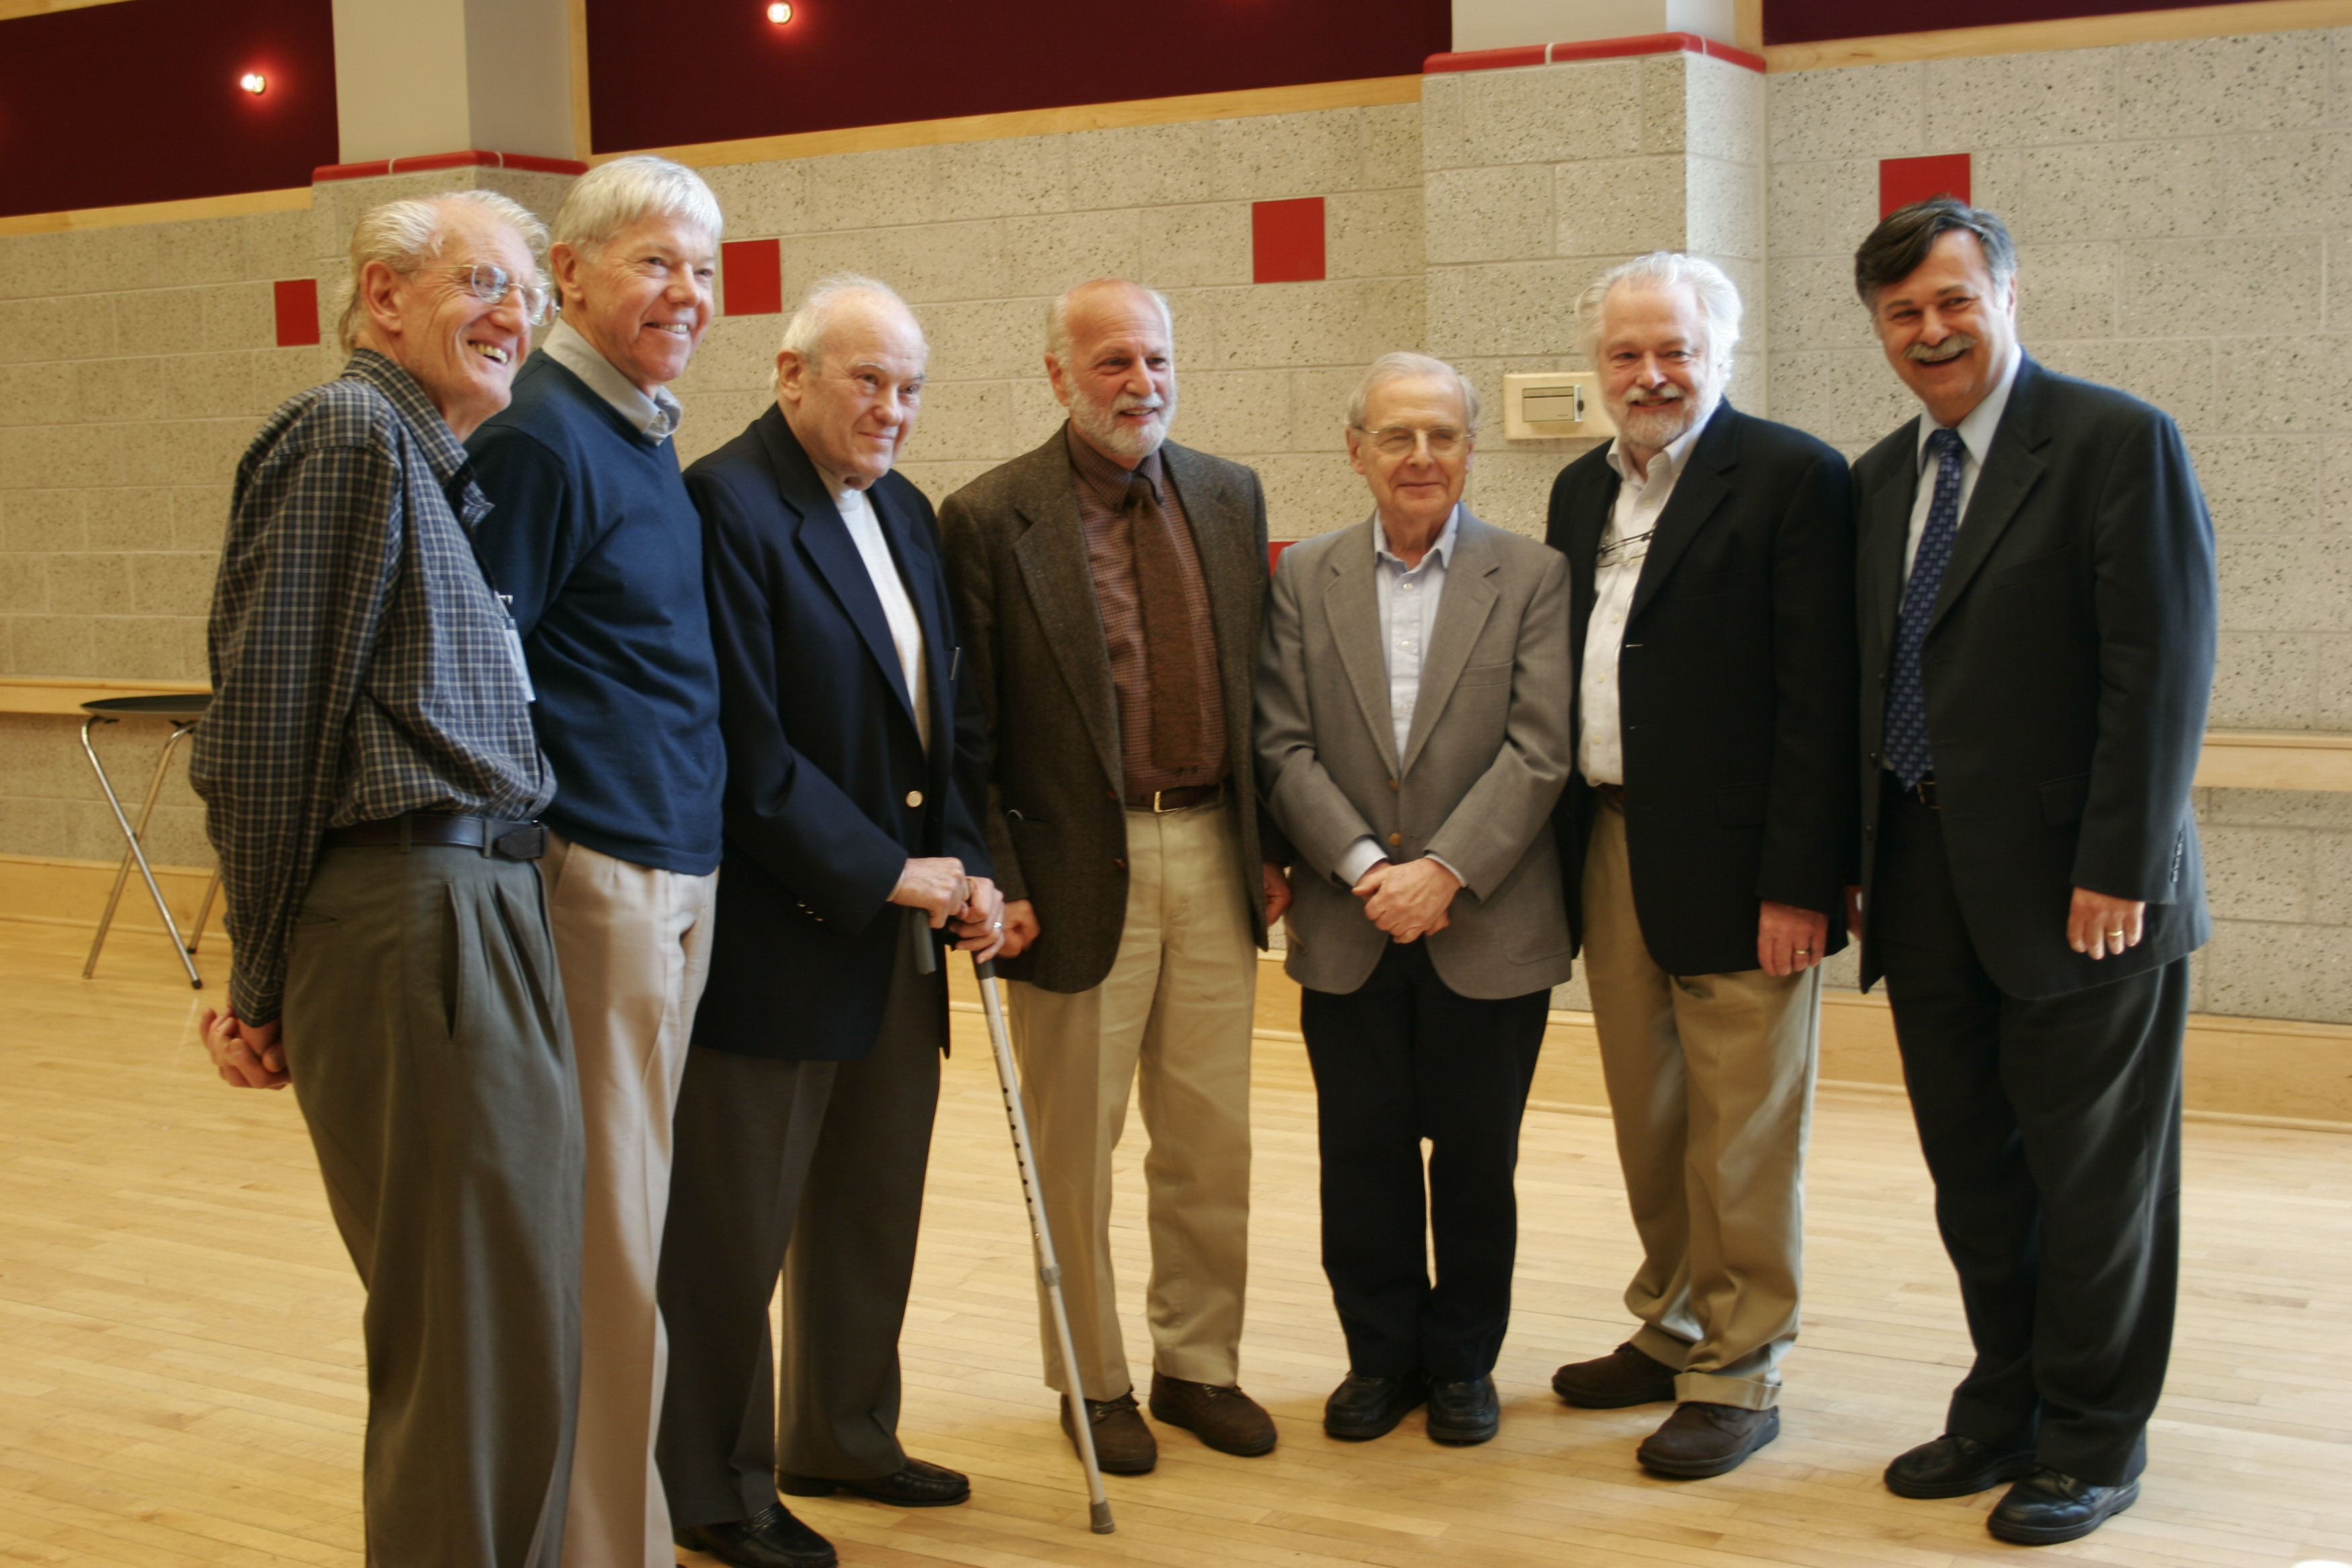 Dick Kieburtz (second from left) and fellow Chairs at the 35th Anniversary of the CS department